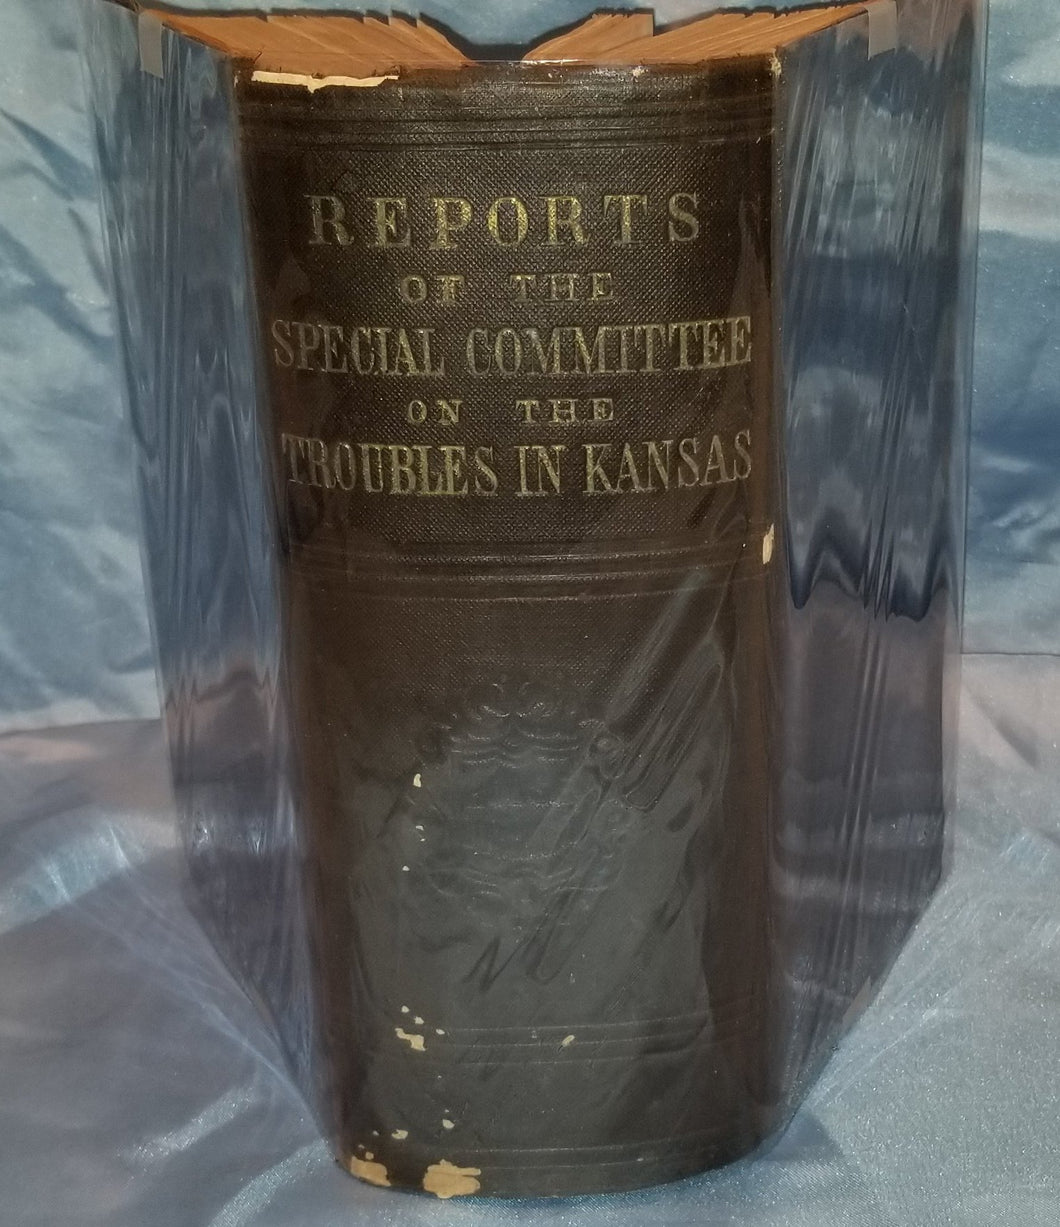 REPORTS ON THE TROUBLES IN KANSAS - 1856 1st Ed. Bleeding Kansas Investigation